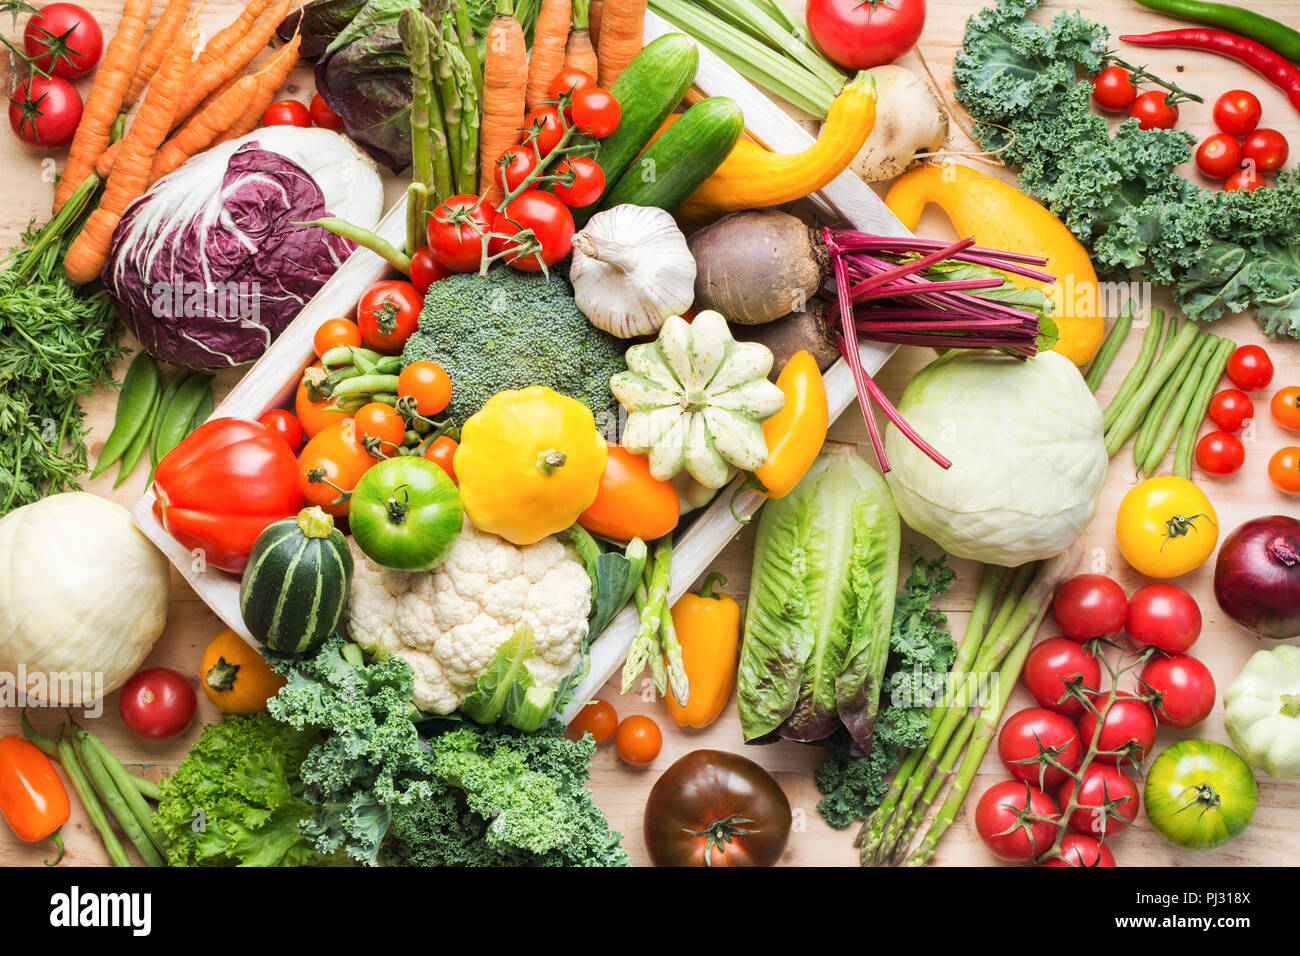 Assortment of fresh colorful organic vegetables in white tray on wooden pine table, food background, top view, selective focus - Stock Image